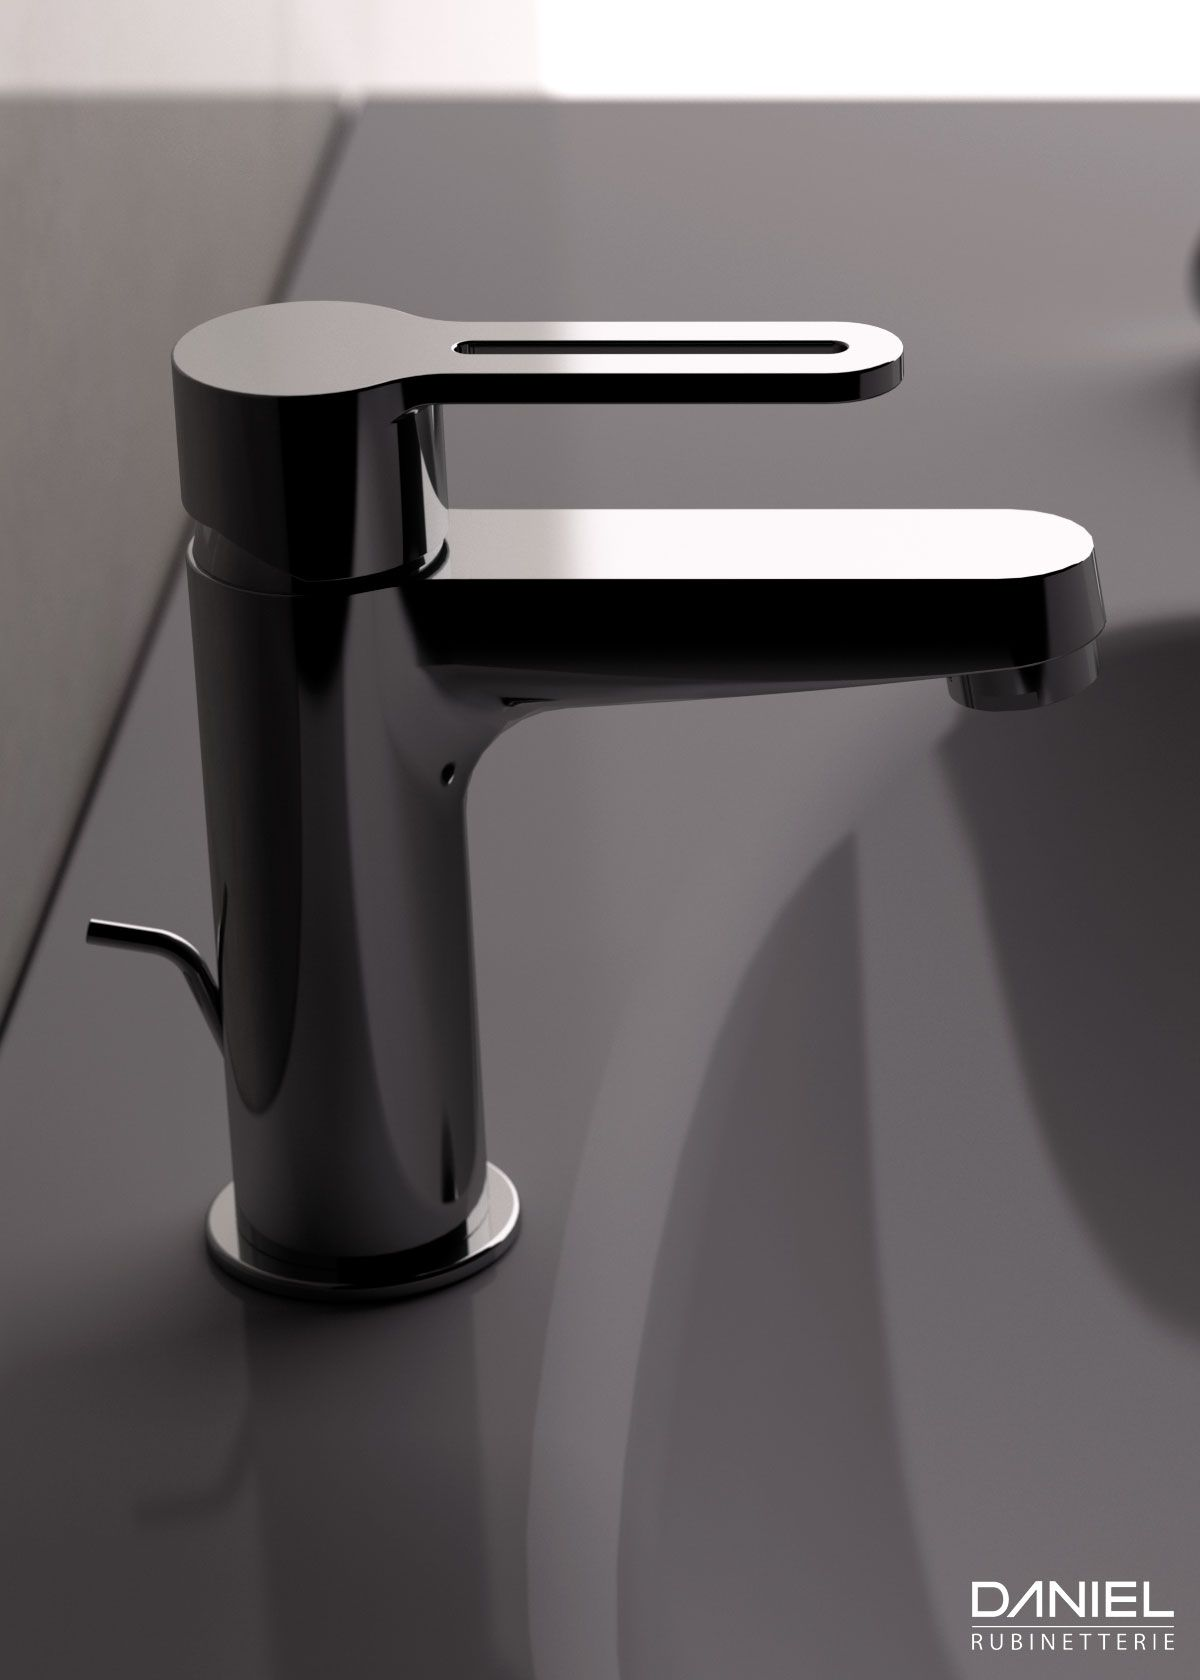 Smart Is A Young Design Faucet Collection That Complete The Bathroom And Kitchen Furnishings With Notes Of Simplicity An Smart Faucet Bath Faucet Basin Mixer [ 1680 x 1200 Pixel ]